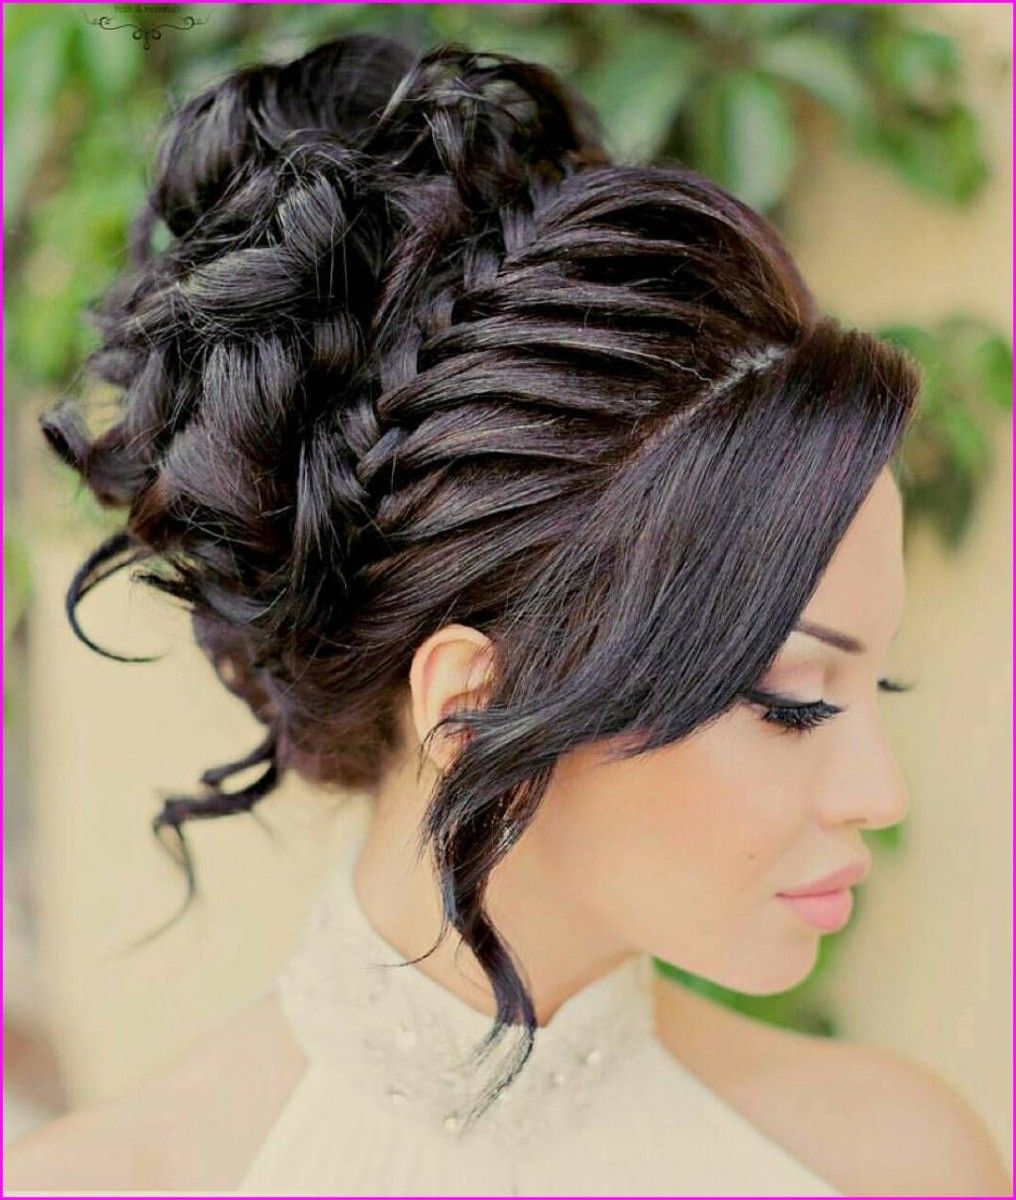 The Most Popular Of Quince Hairstyles Quince Hairstyles Curly Hair Quince Hairstyles For Damas Quince Hairstyl Quince Hairstyles Hair Styles Hair Inspiration